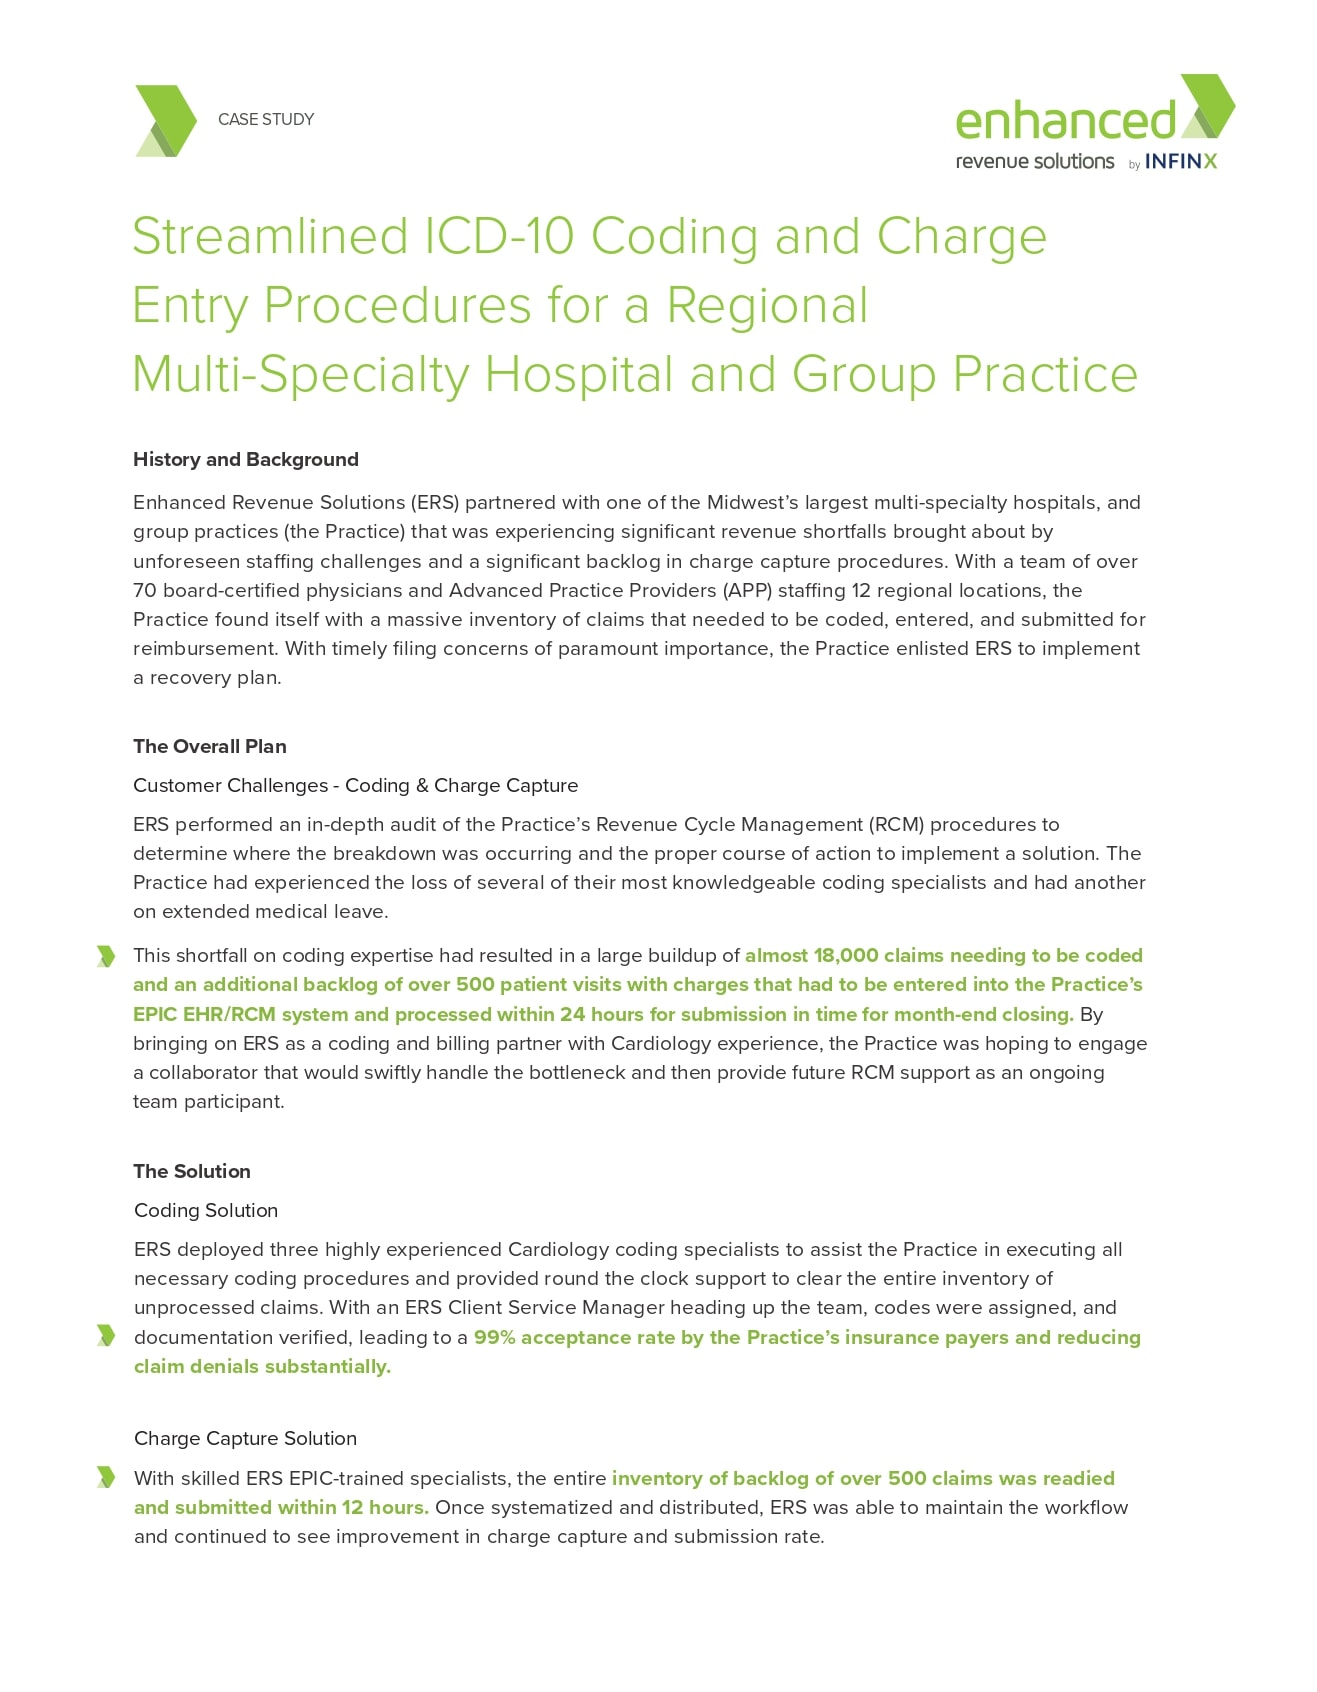 Icd 10 Coding And Charge Entry Procedures For Hospital And